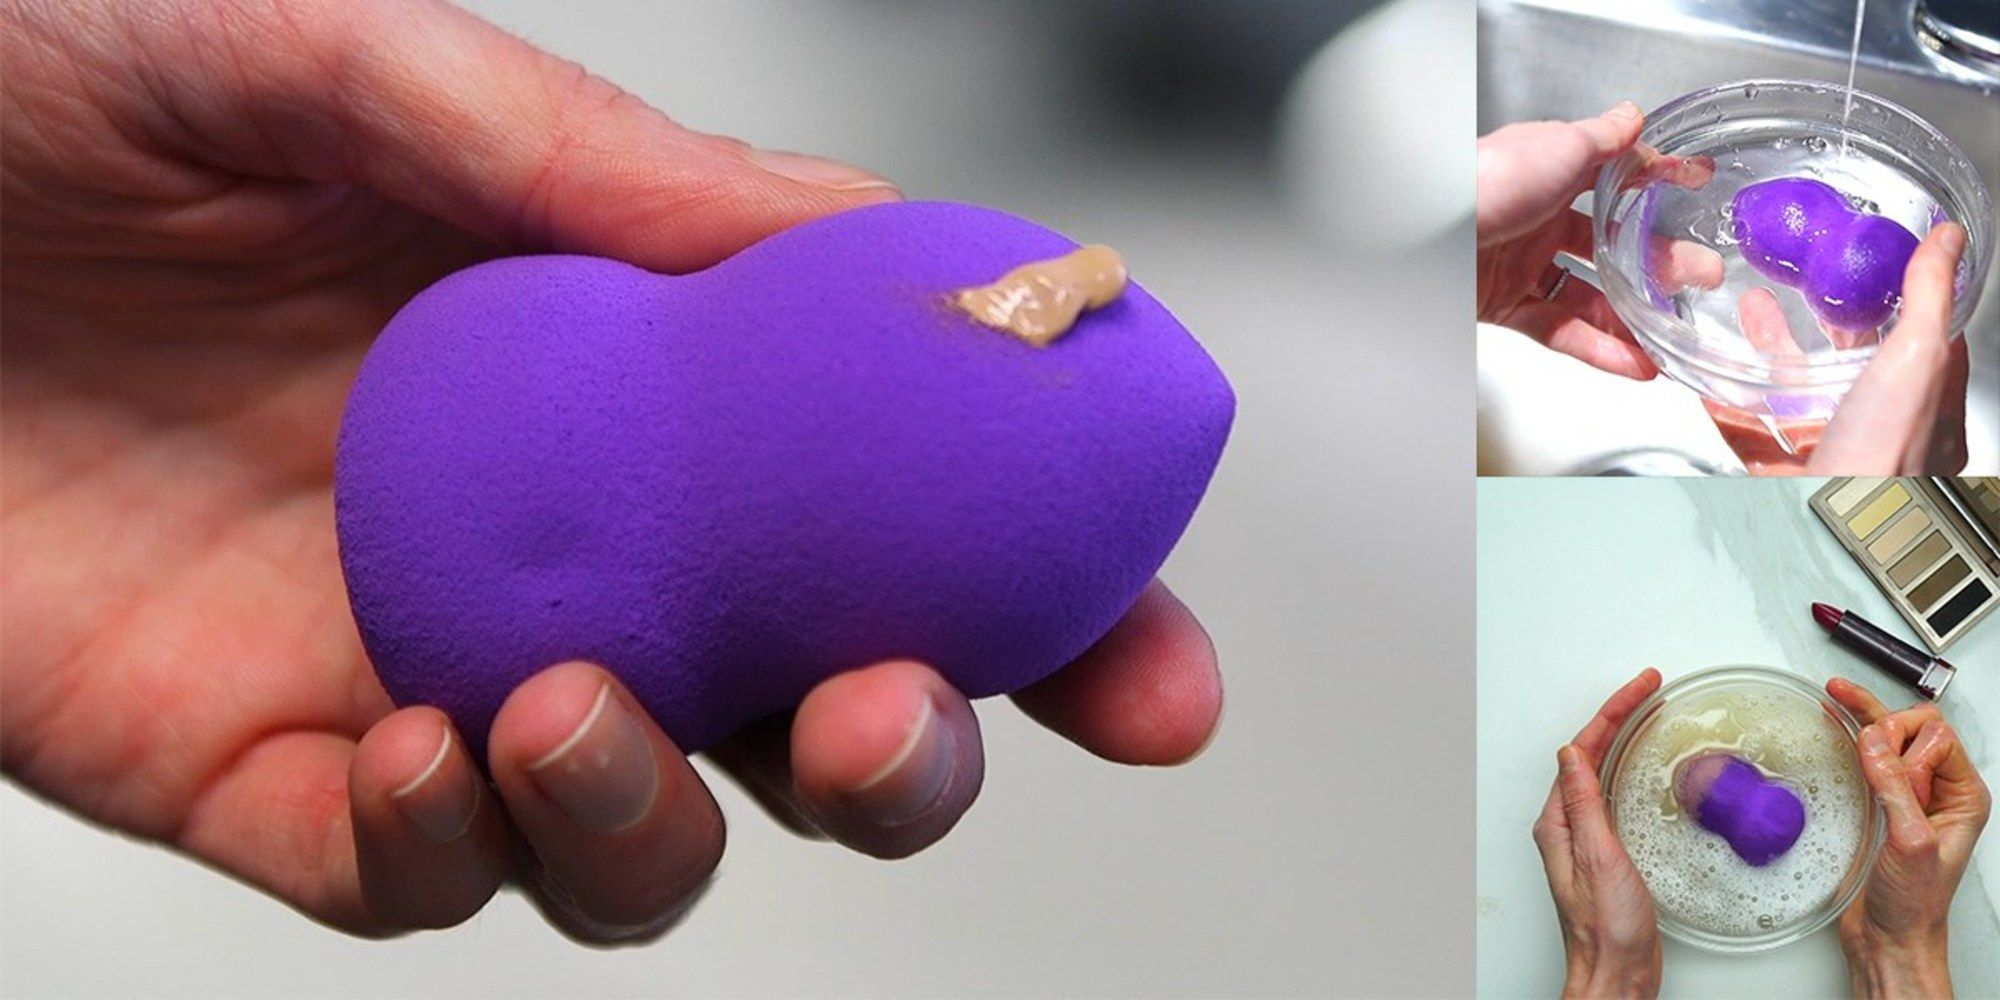 This Hack for Cleaning Makeup Sponges Will Change Your